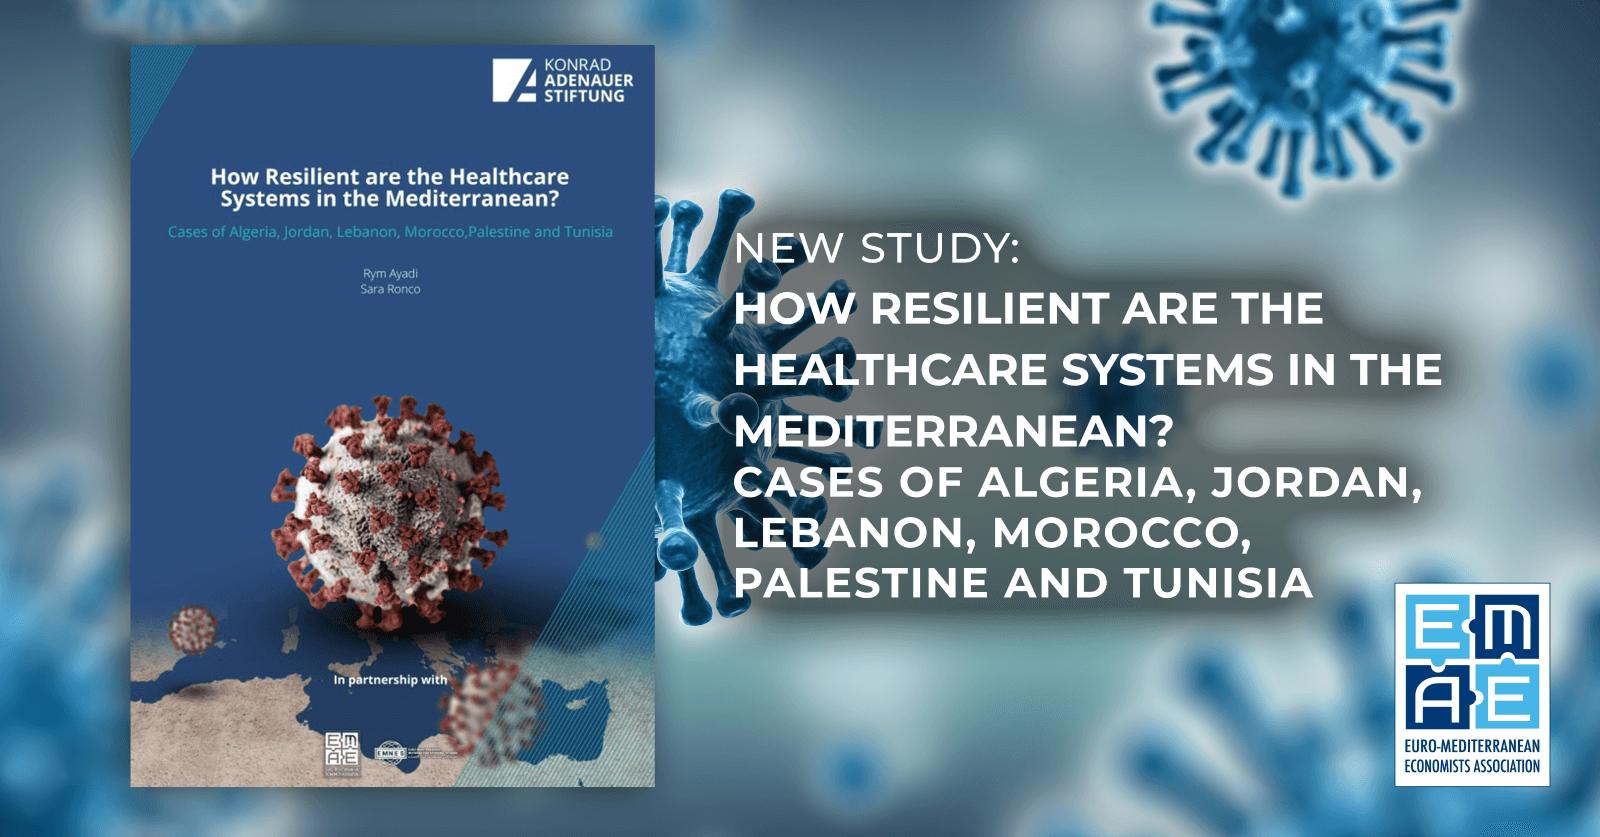 New Study: How Resilient are the Healthcare Systems in the Mediterranean? Cases of Algeria, Jordan, Lebanon, Morocco, Palestine and Tunisia